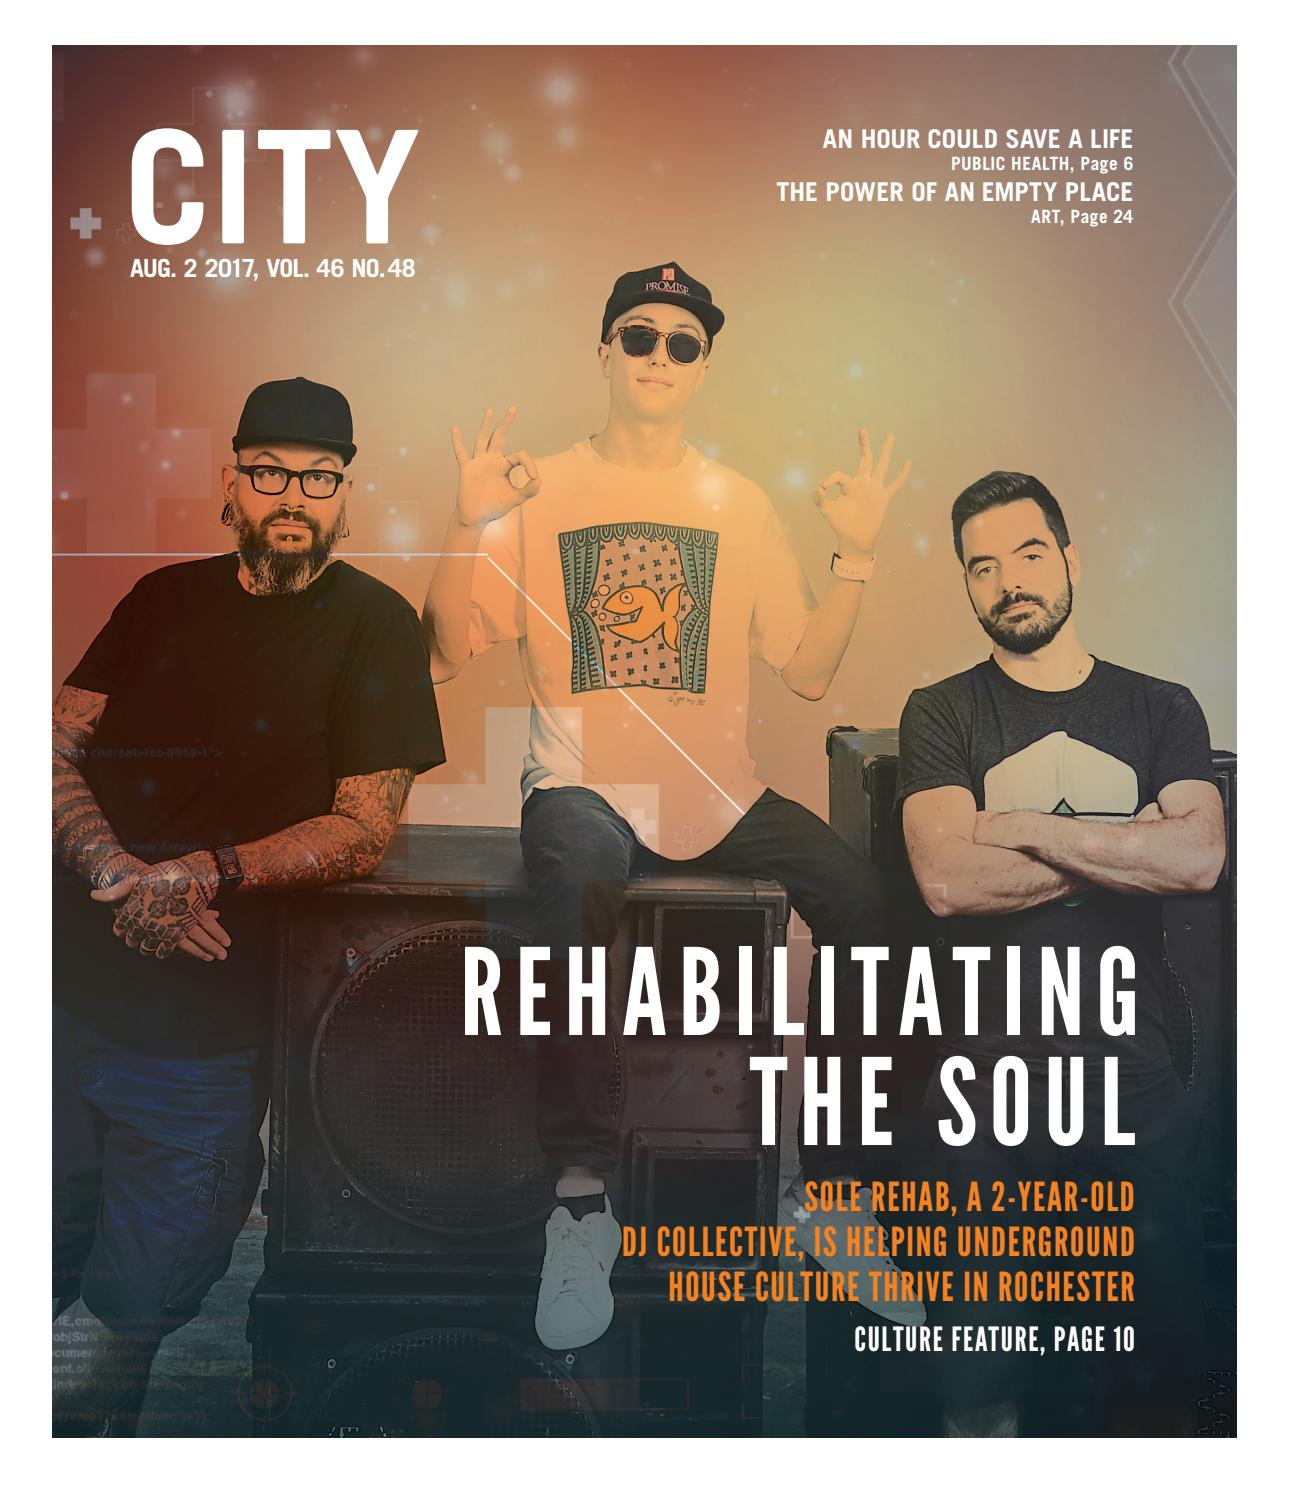 August 2-August 8, 2017 by Rochester City Newspaper - issuu